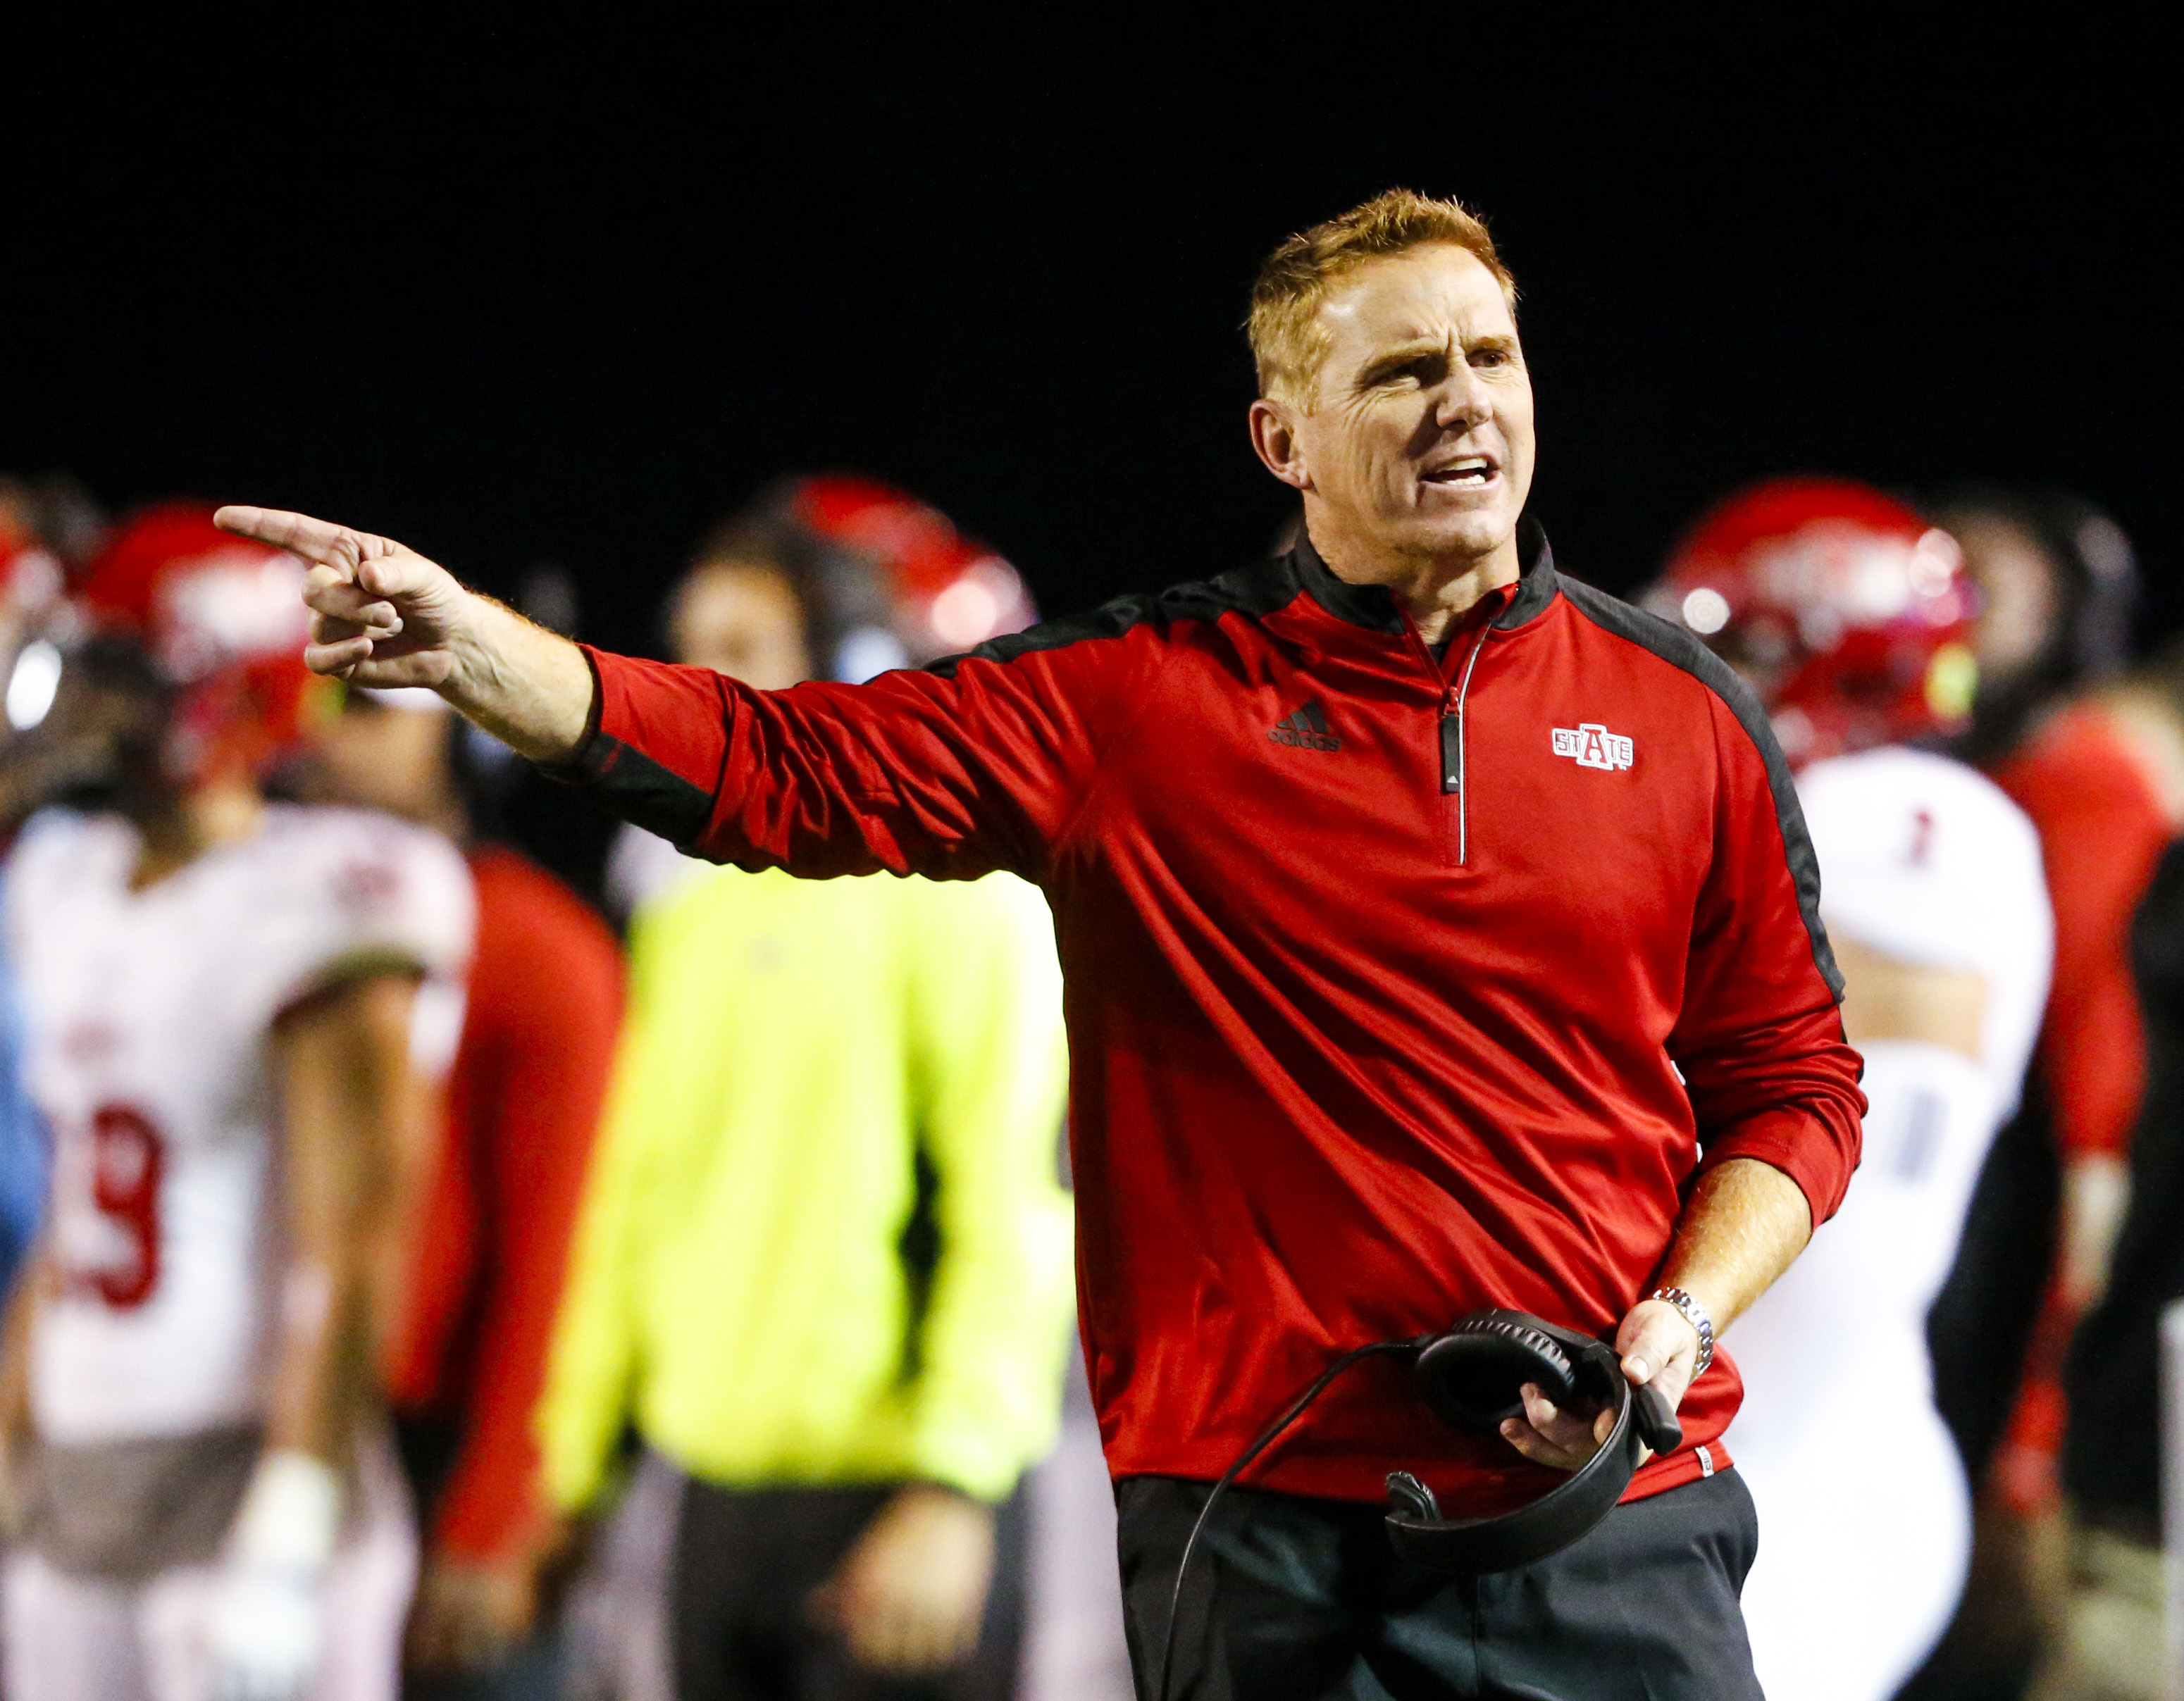 FILE - In this Nov. 17, 2016, file photo, Arkansas State coach Blake Anderson reacts to a call during the second half of the team's NCAA college football game against Troy, in Troy, Ala. Arkansas State and UCF certainly have a lot in common heading into S